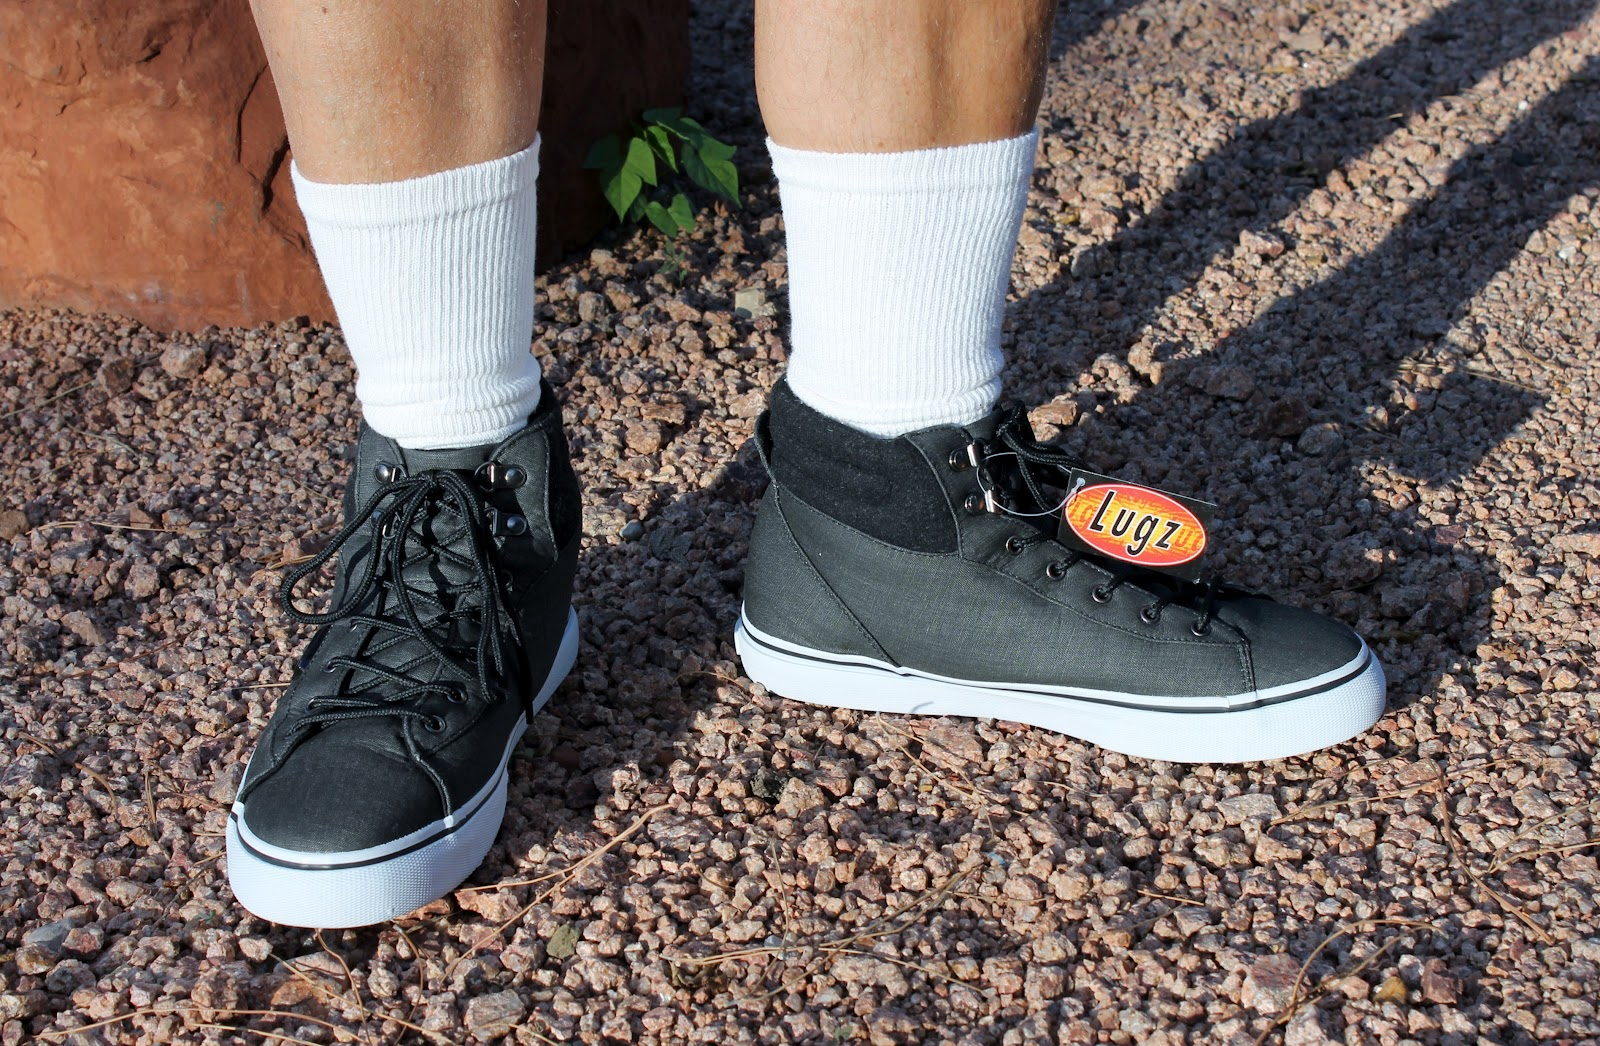 Lugz Casual Shoes Mens